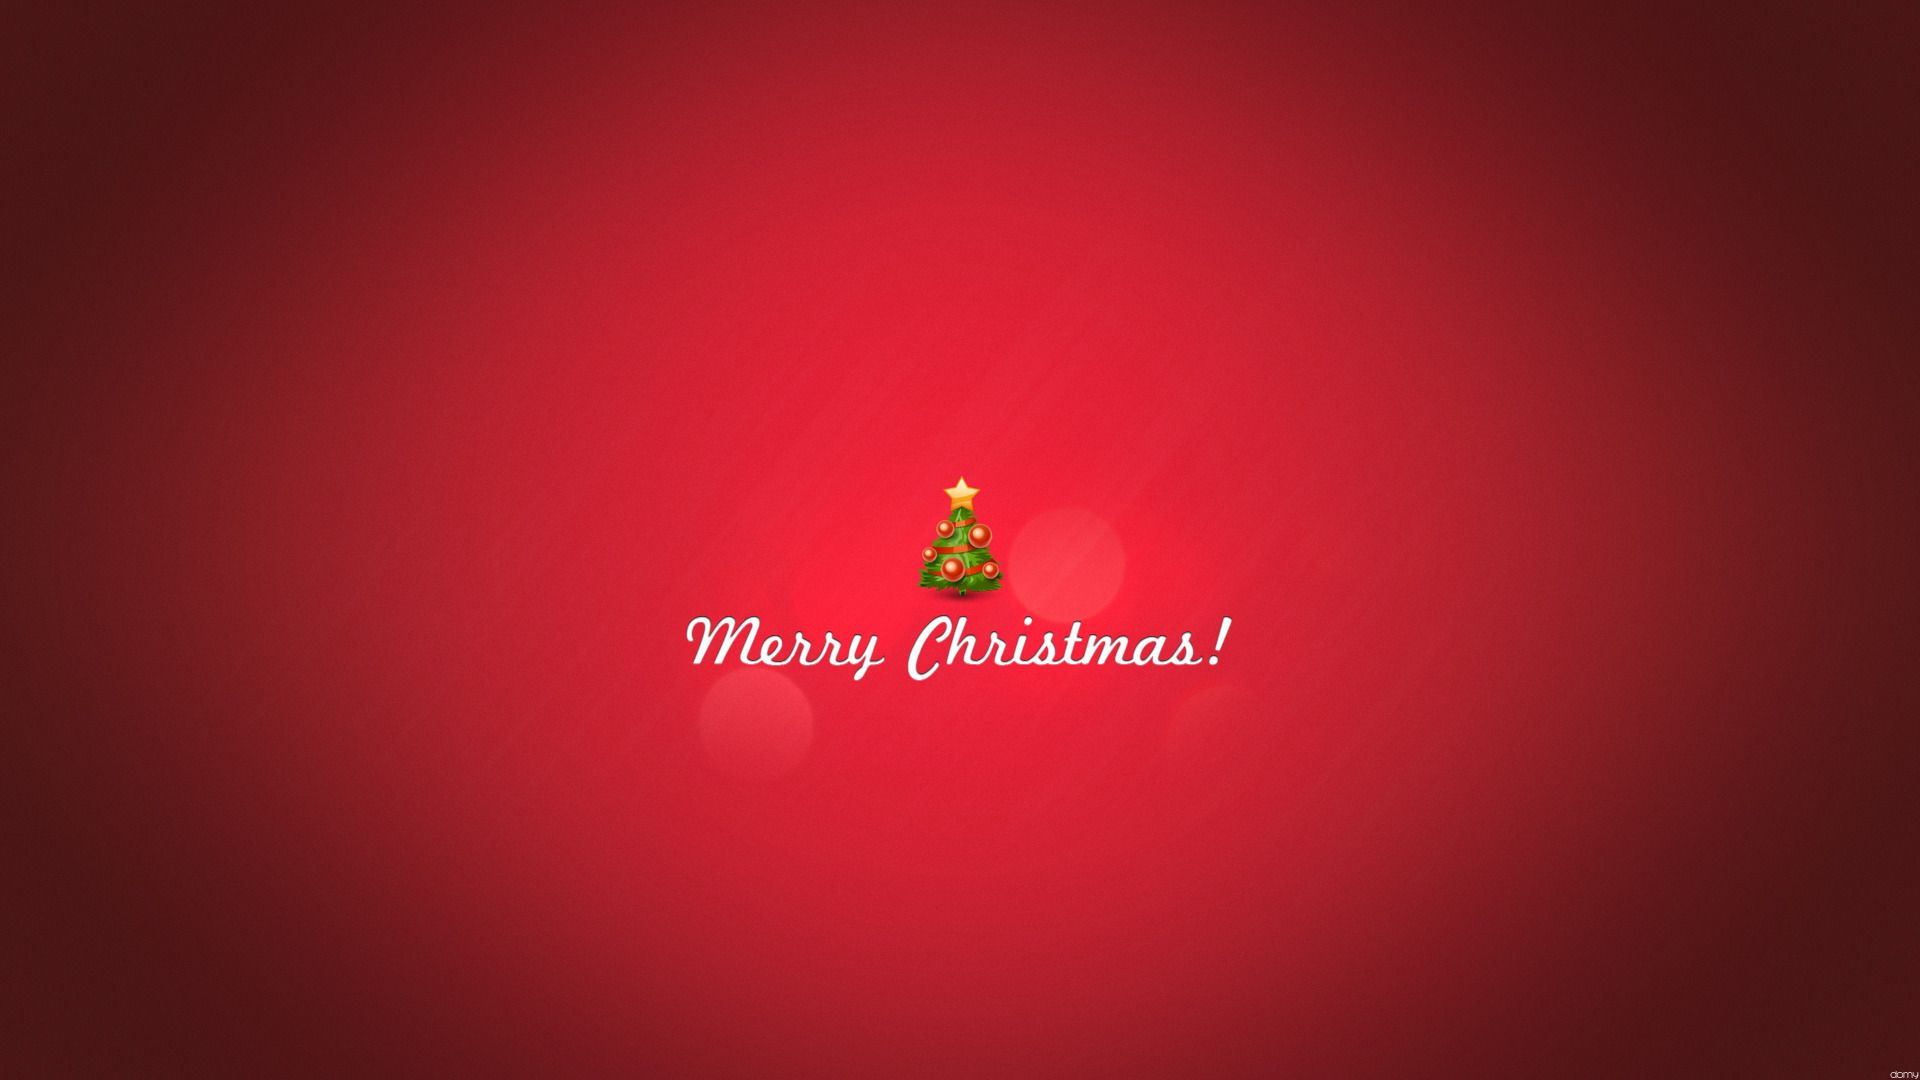 Minimalist Merry Christmas Wallpaper HD 1080p